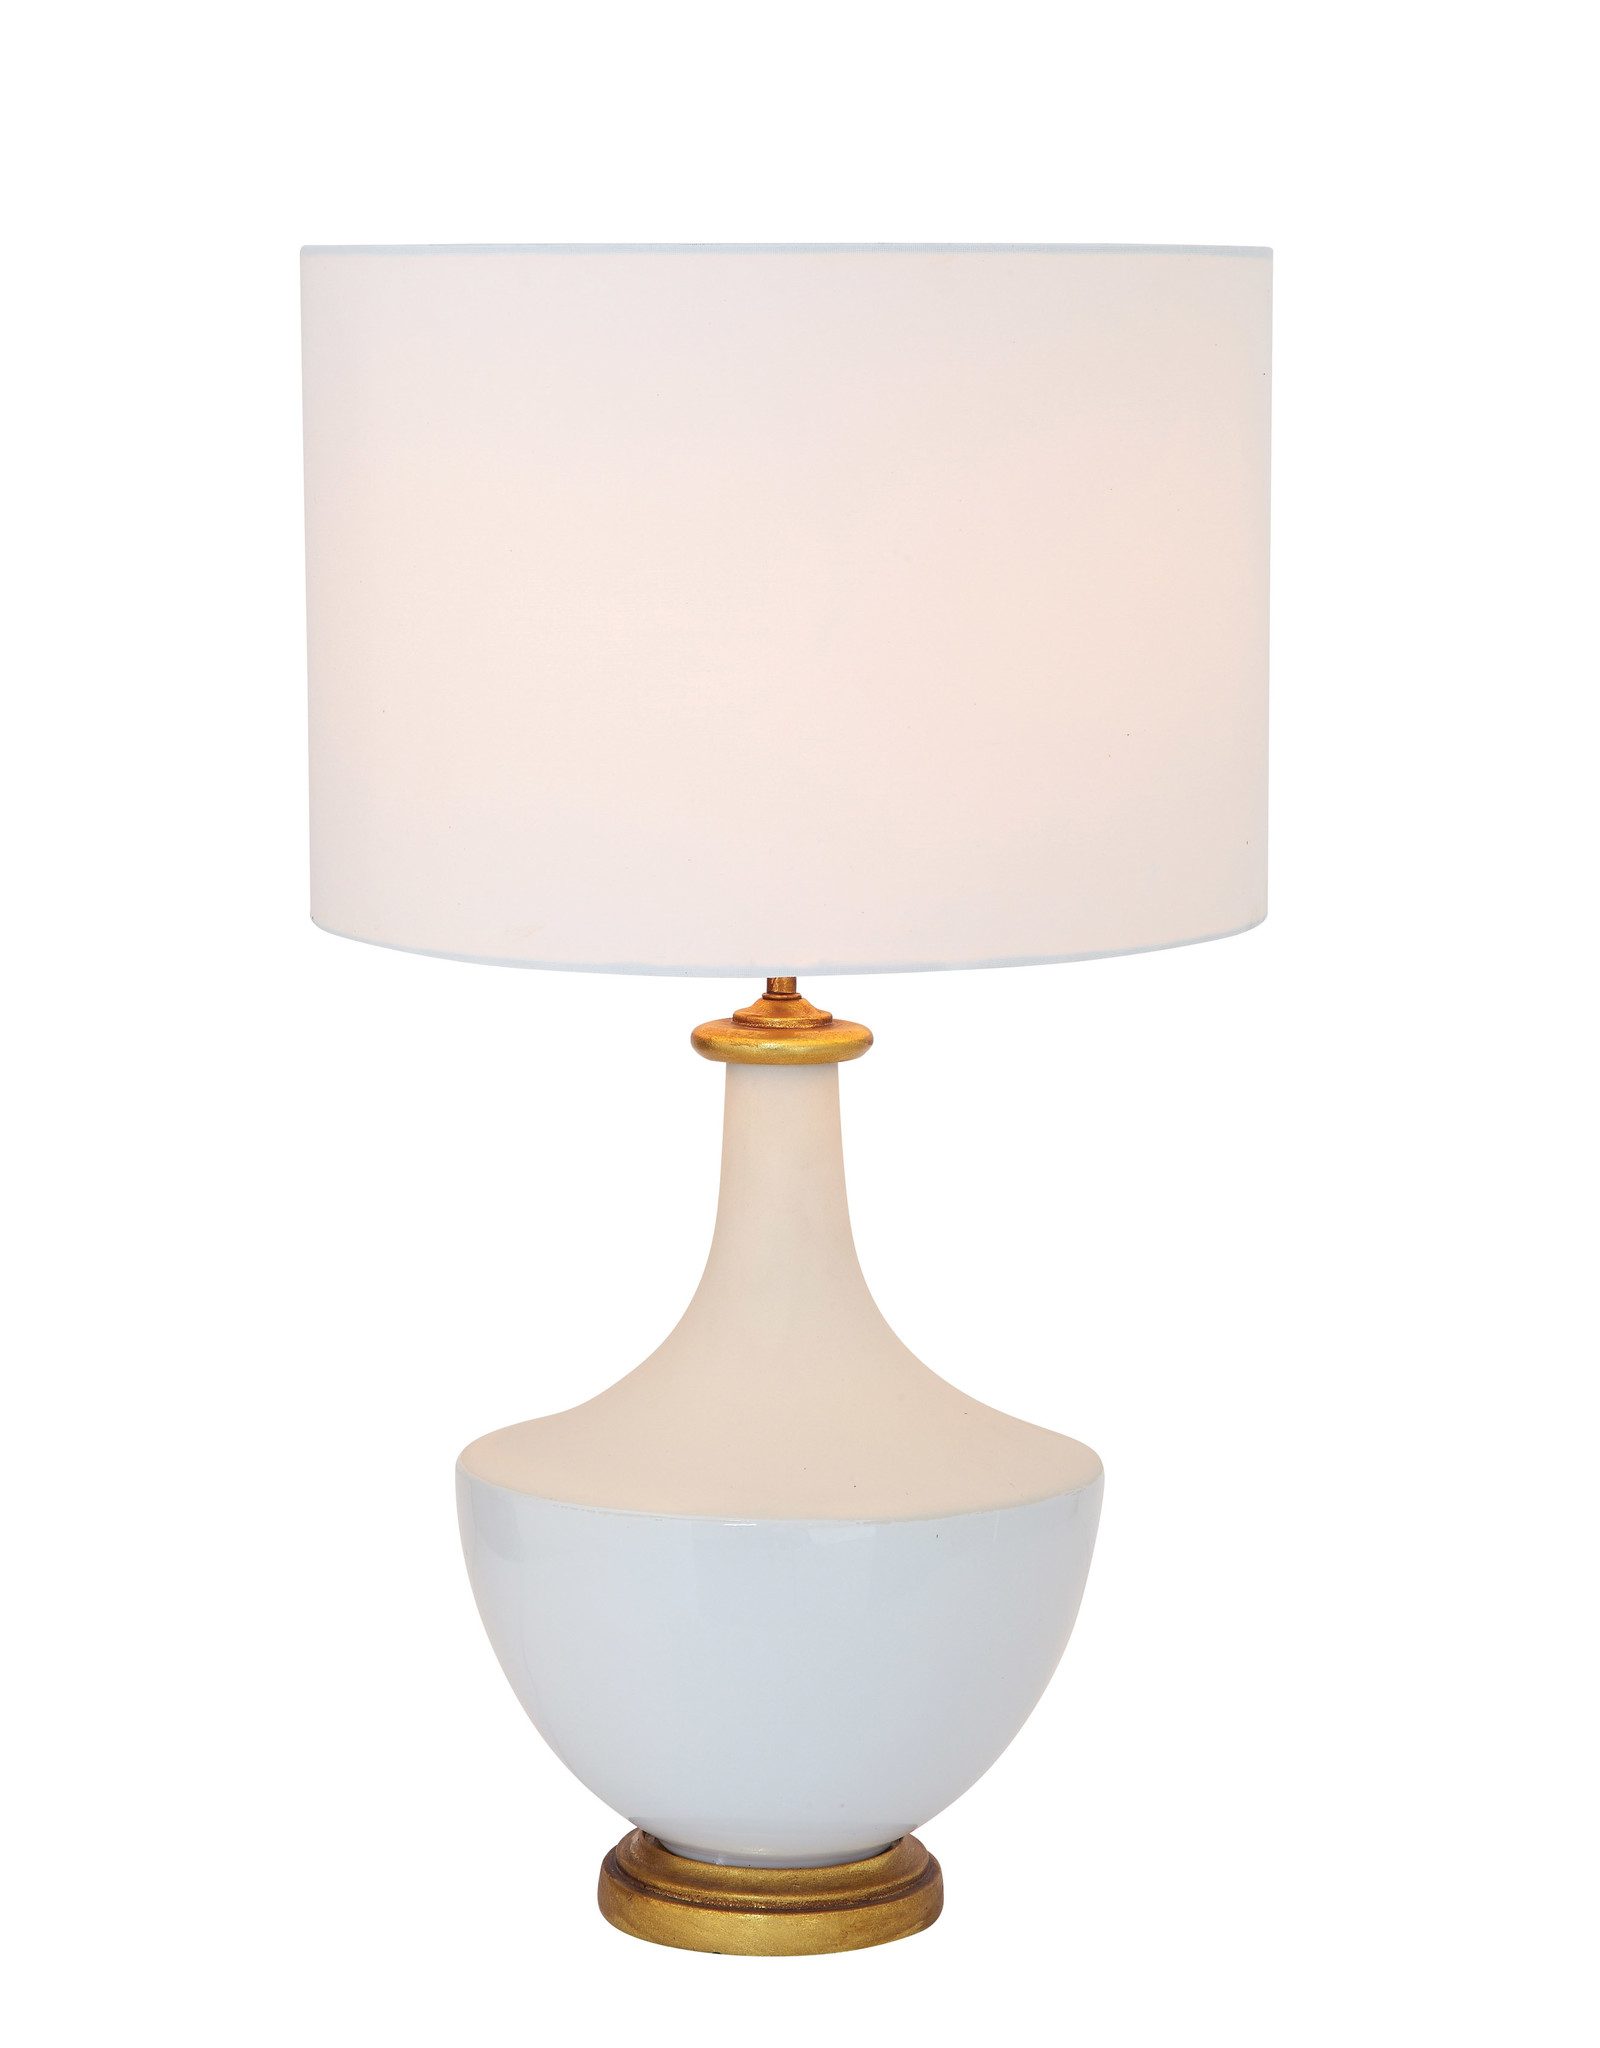 Ceramic Table Lamp with Linen Shade, Cream